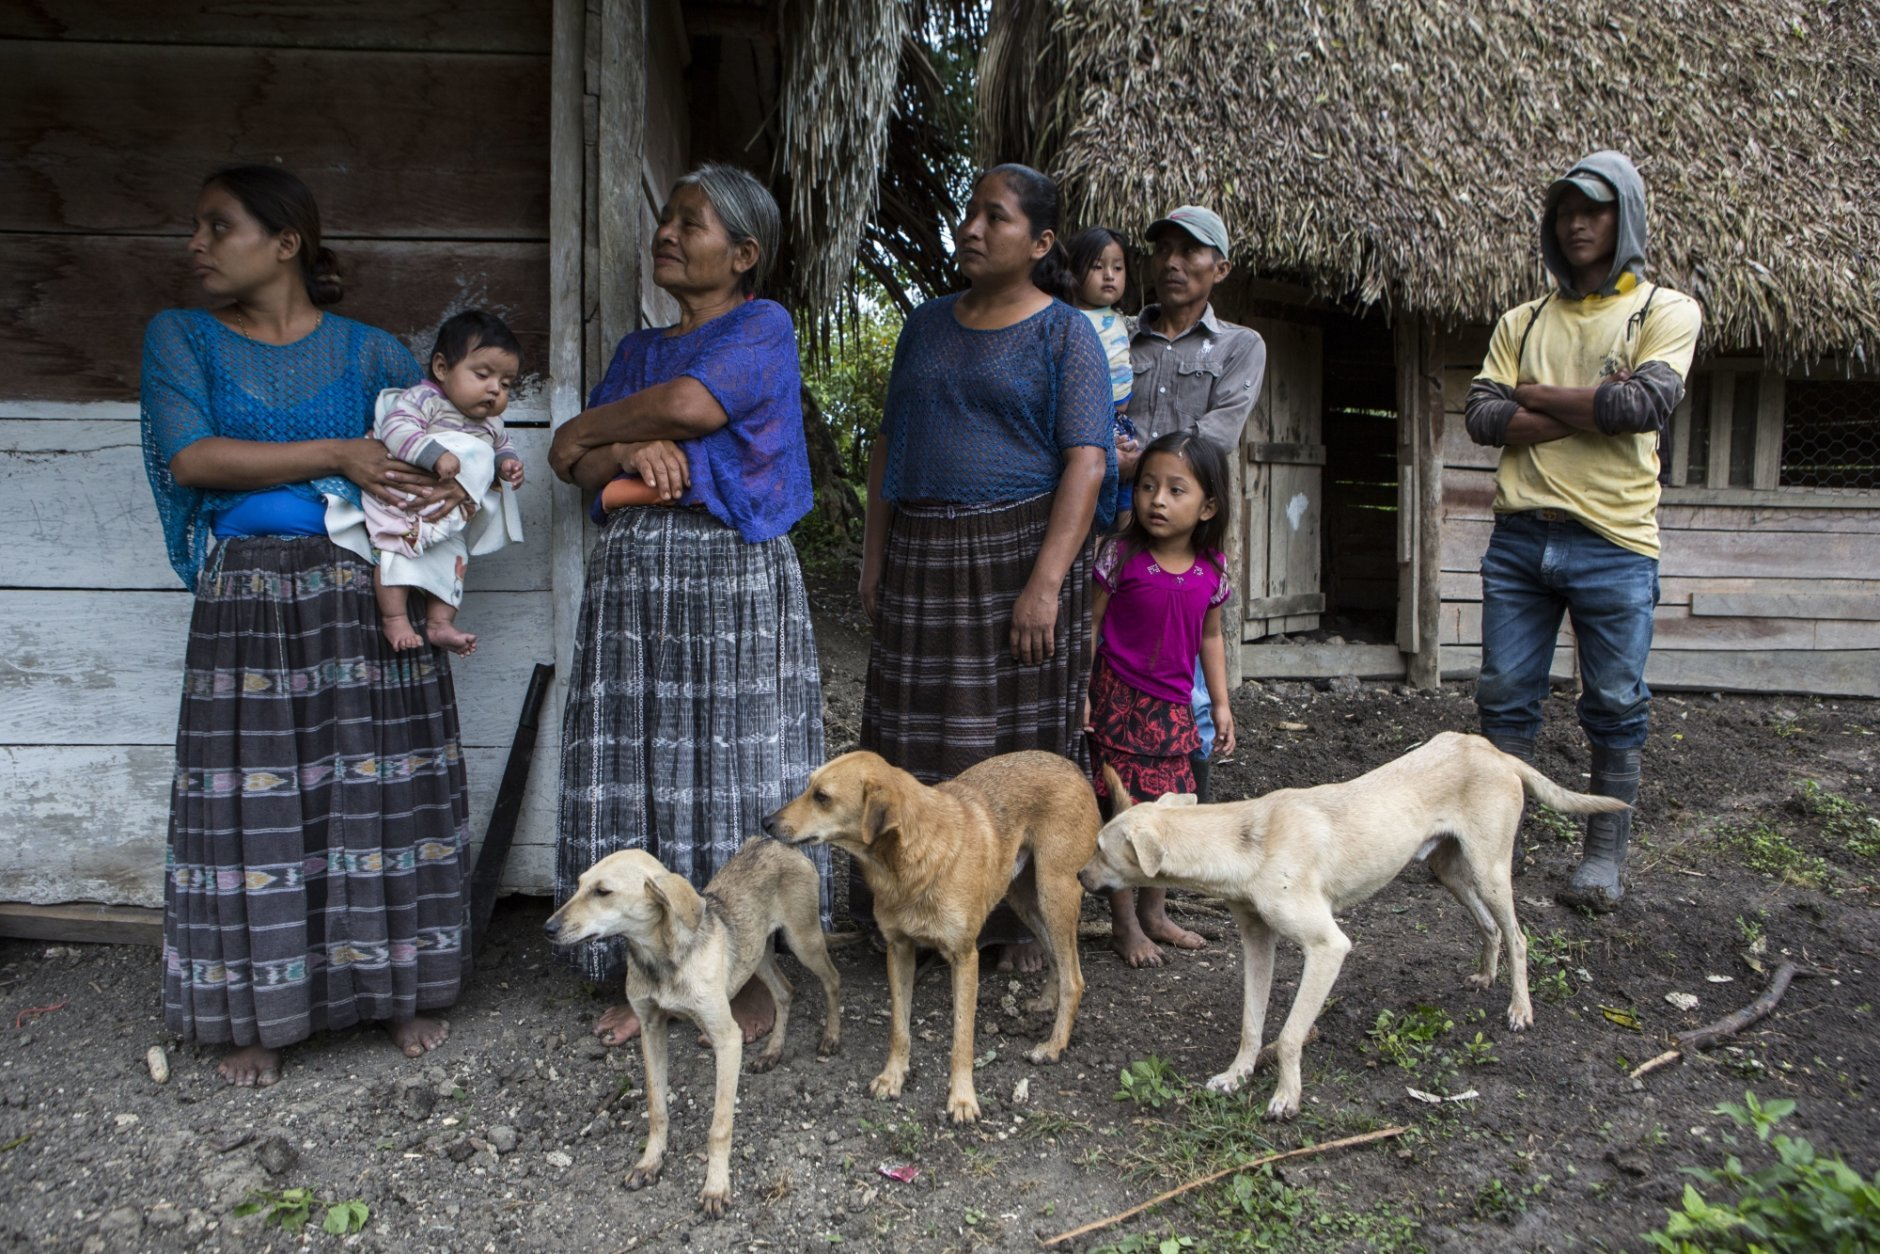 Members of the Caal Maquin family and neighbors stand in front of Claudia Maquin's house in Raxruha, Guatemala, on Saturday, Dec. 15, 2018. Claudia Maquin's daughter, 7-year-old Jakelin Amei Rosmery Caal, died in a Texas hospital, two days after being taken into custody by border patrol agents in a remote stretch of New Mexico desert. (AP Photo/Oliver de Ros)